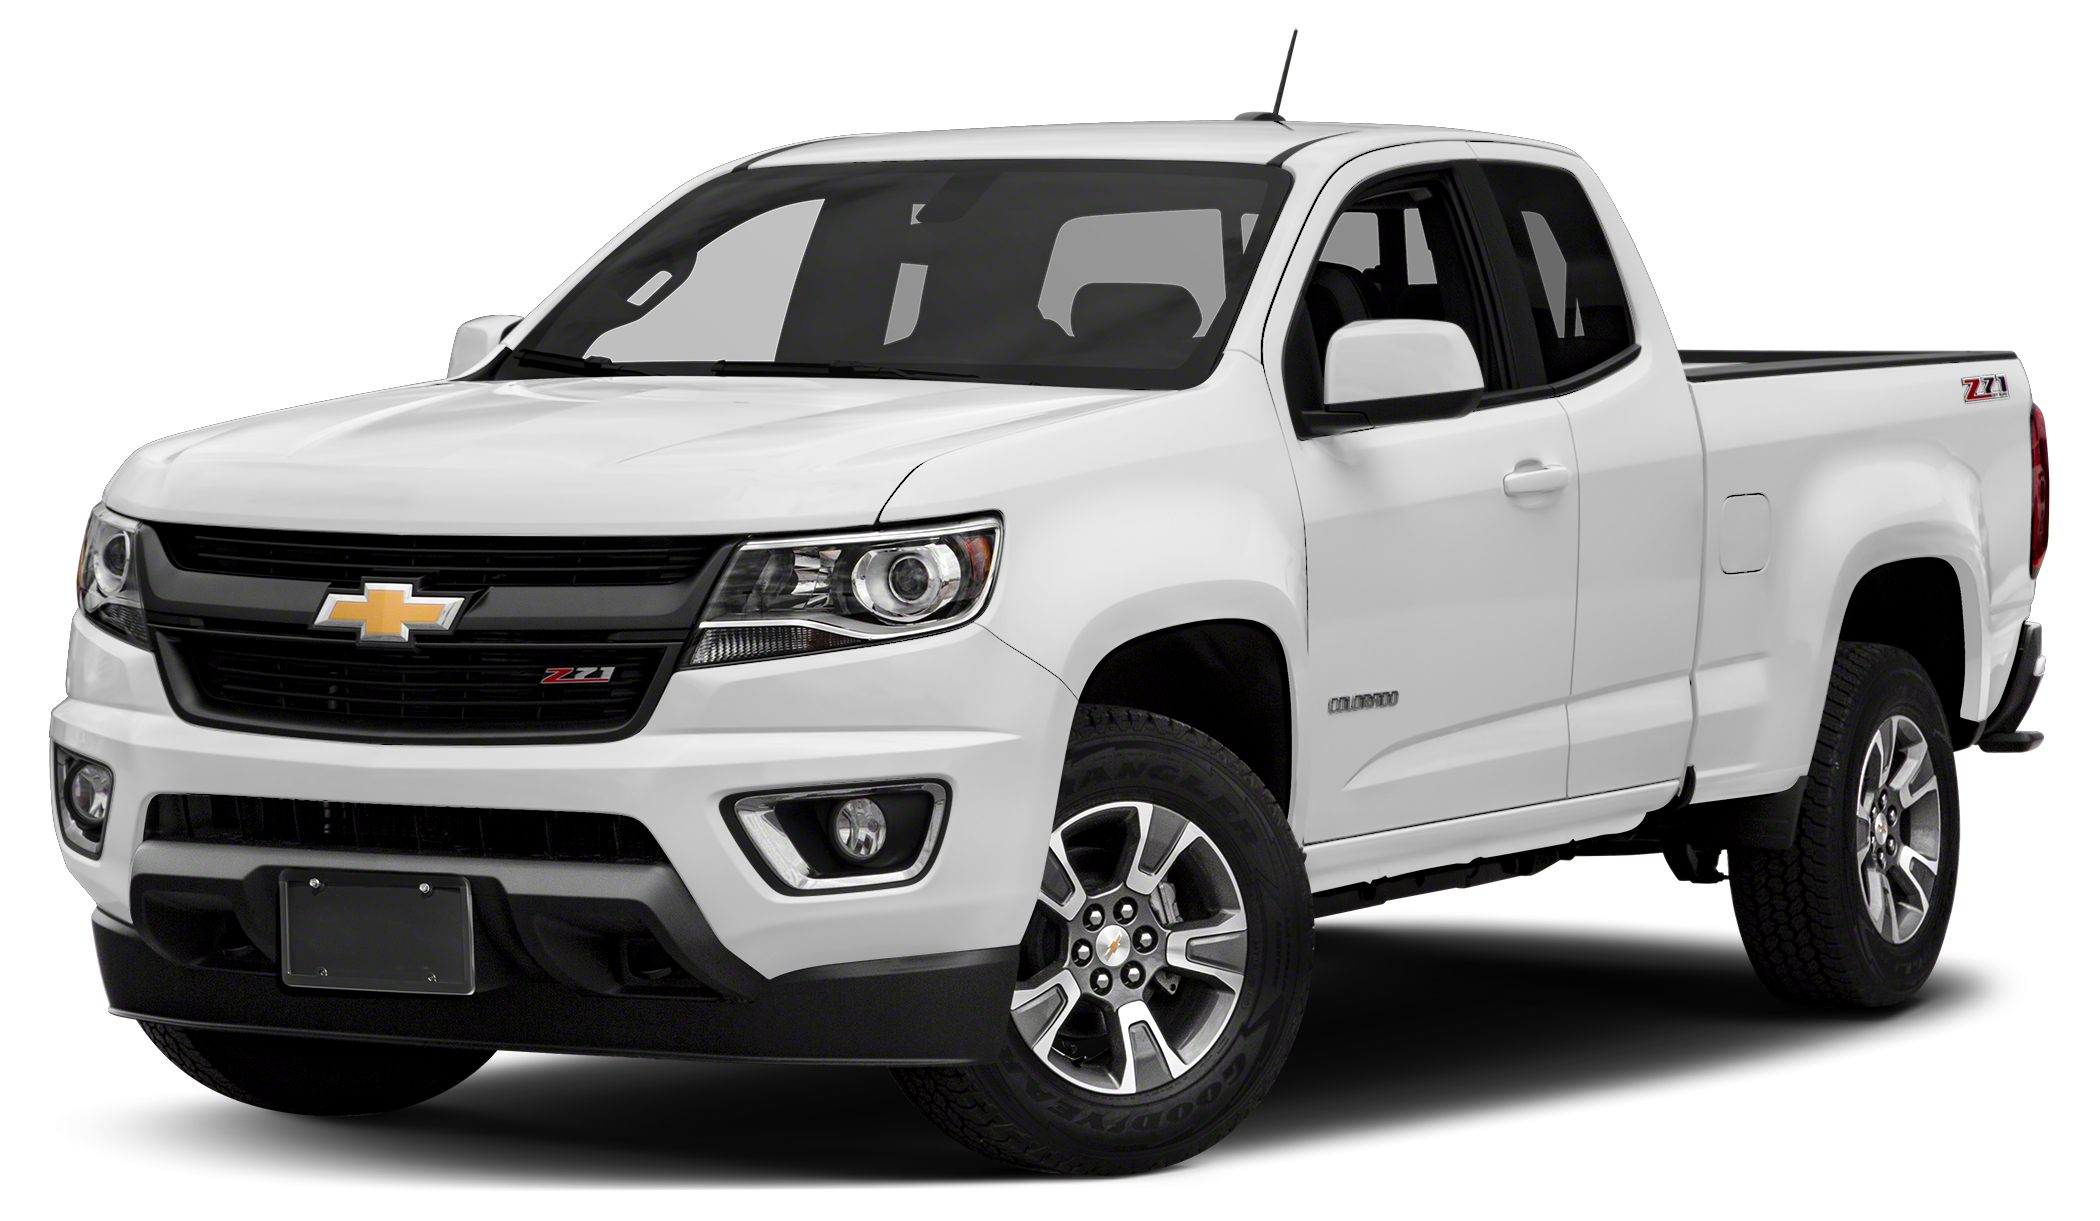 2018 Chevrolet Colorado Z71 Summit White 2018 Chevrolet Colorado Z71 RWD 8-Speed Automatic V6 Mil